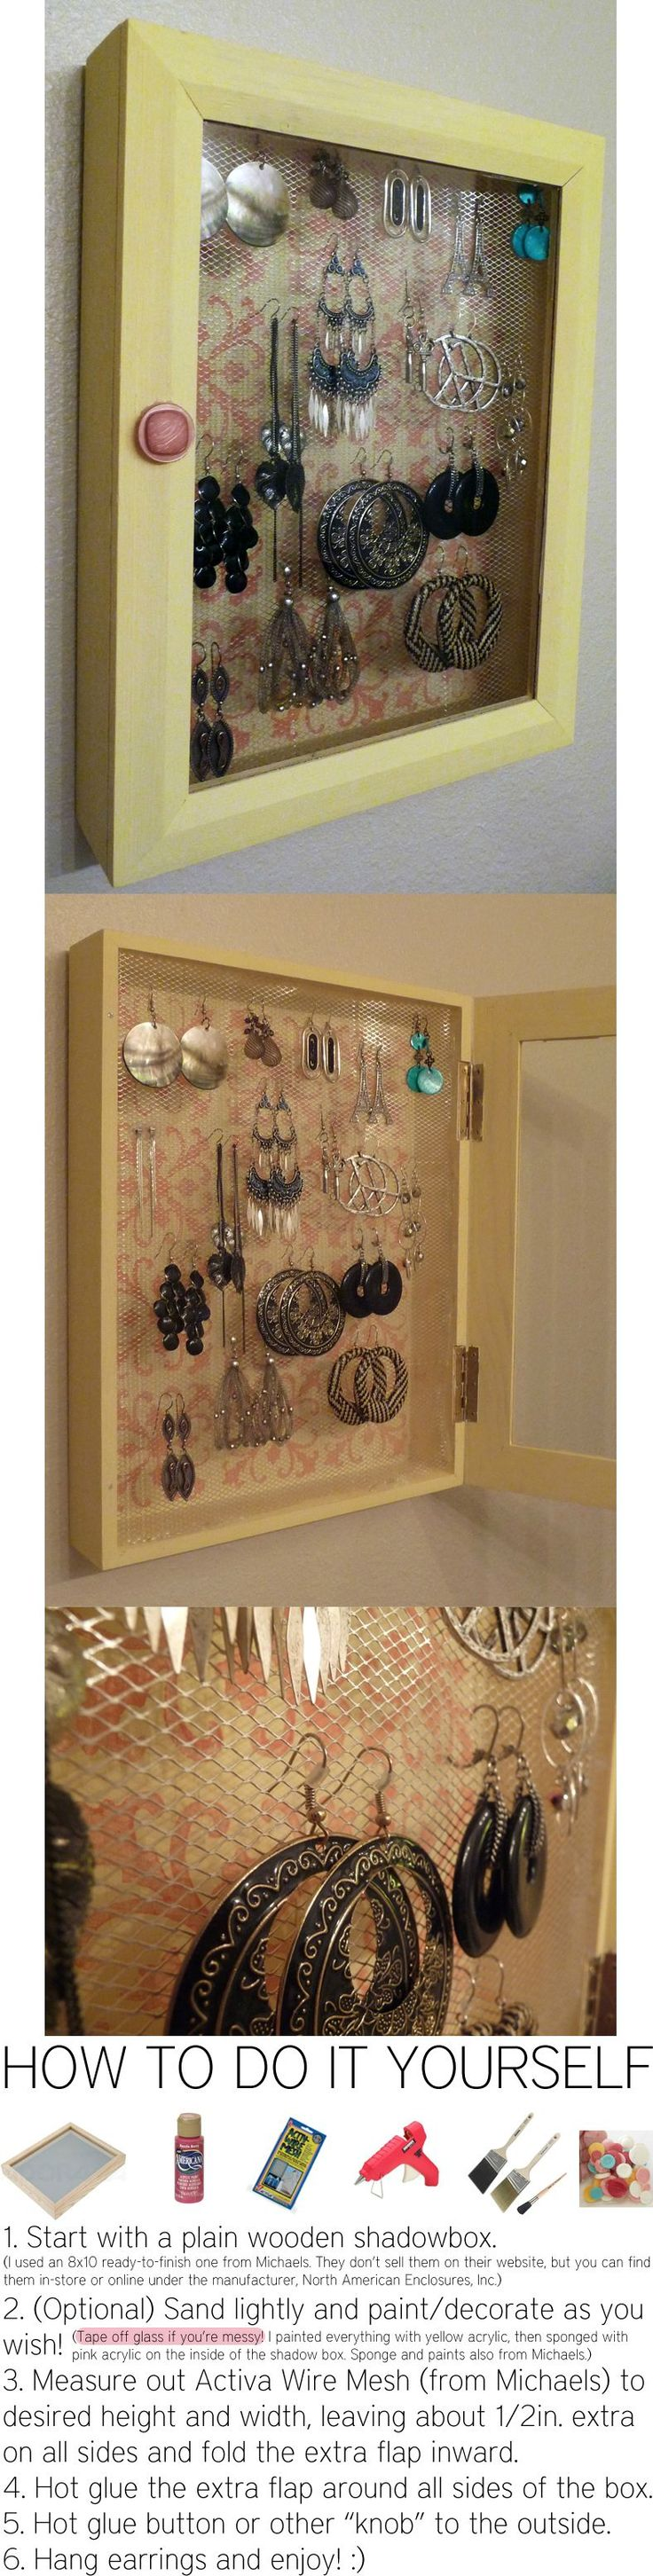 For your Earrings. I LOVE this. Going to have to make this.: Diy Earring Holder, Jewelry Storage, Craft, Earring Shadowbox, Jewelry Displays, Diy Jewelry, Diy Earrings